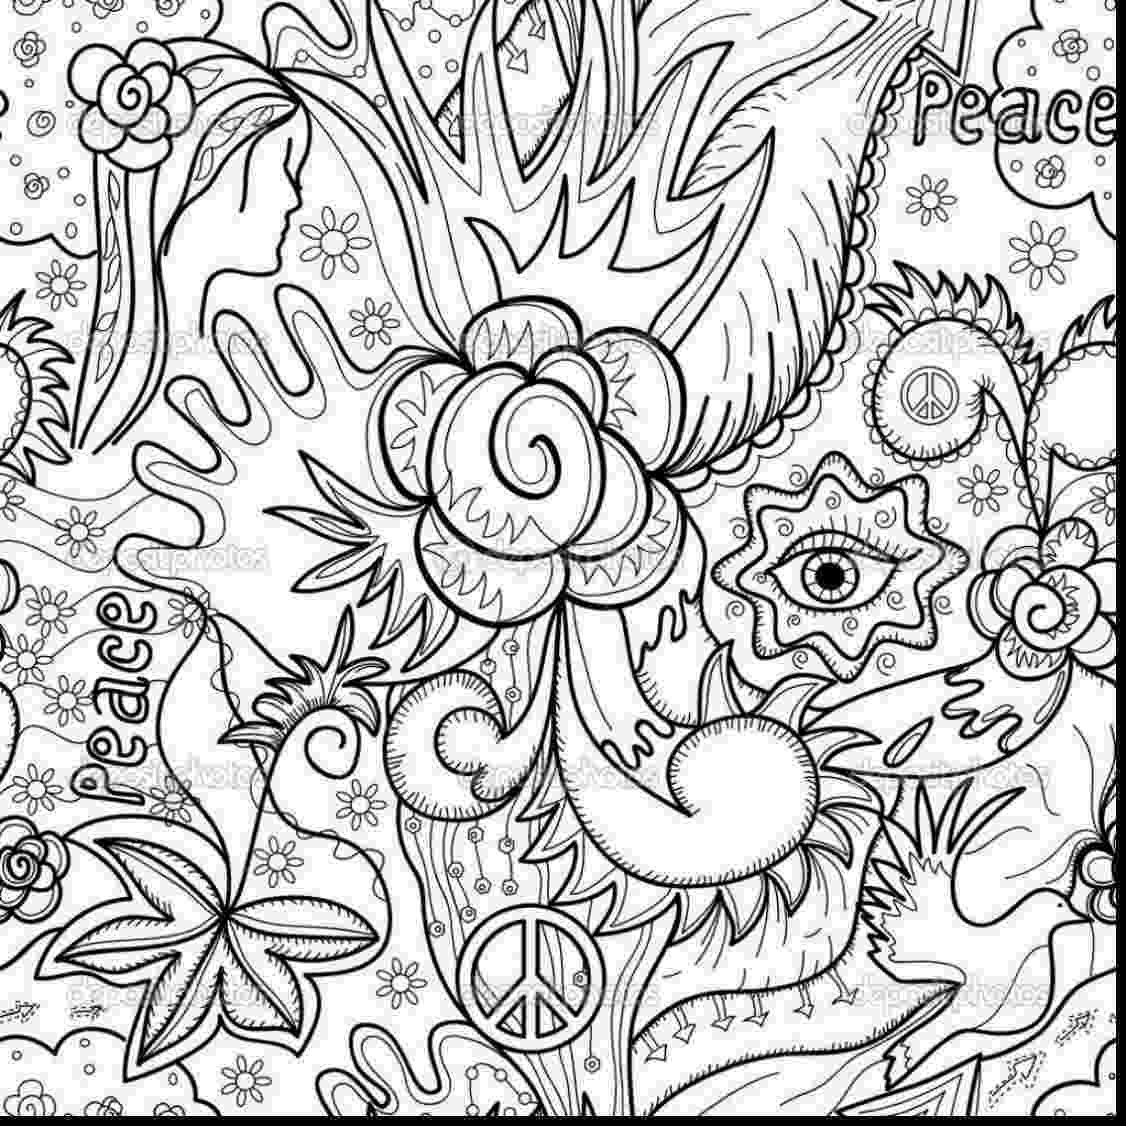 relaxing coloring pages relaxing coloring page heart spring summer love coloring relaxing pages